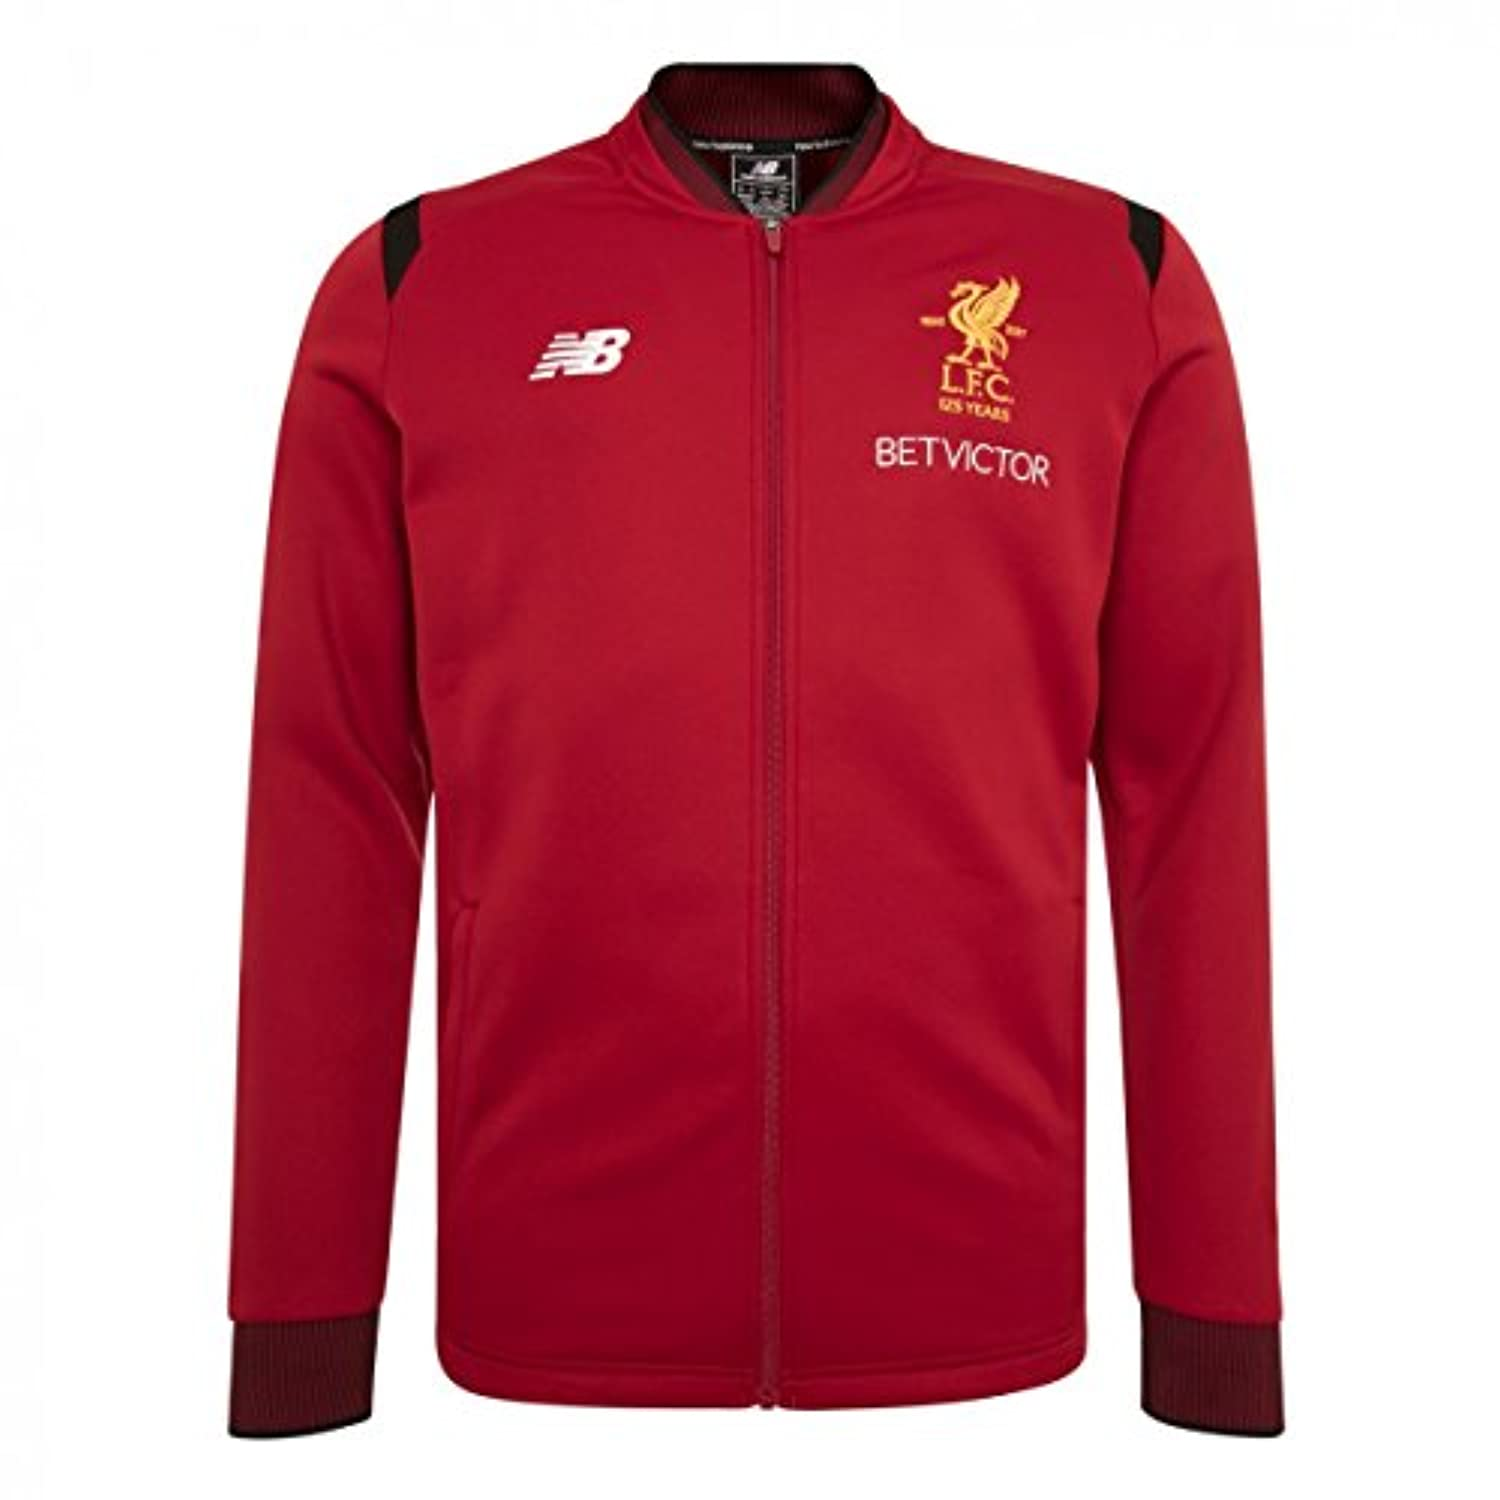 New Balance Men's Liverpool FC Elite Training Walk Out Jacket - Red Pepper サッカー リヴァプールFC ジャケット (US Size Medium)